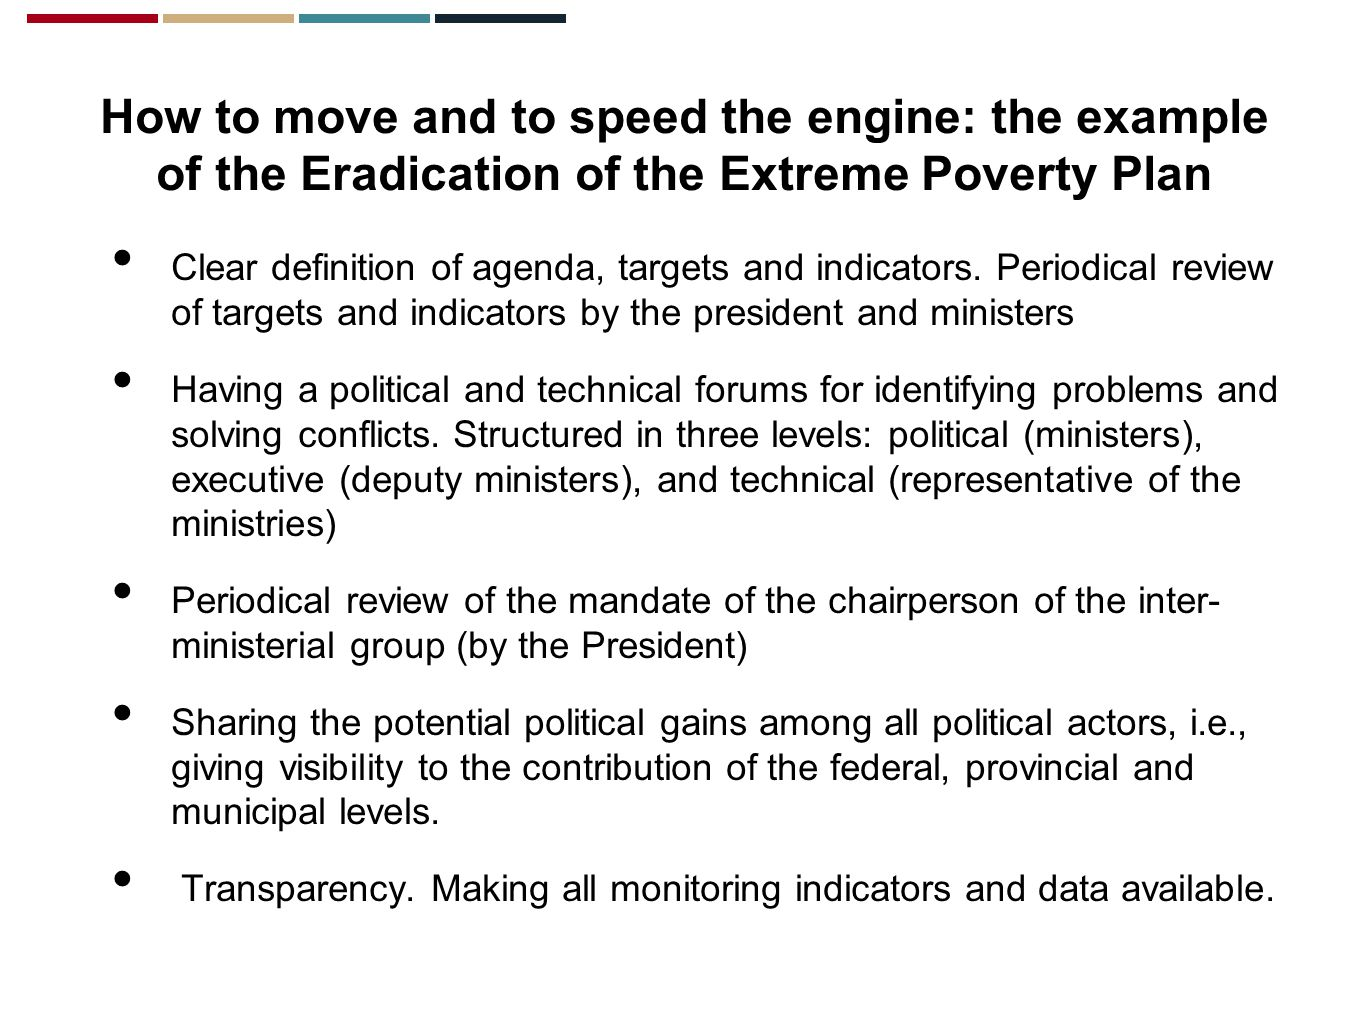 How to move and to speed the engine: the example of the Eradication of the Extreme Poverty Plan Clear definition of agenda, targets and indicators.